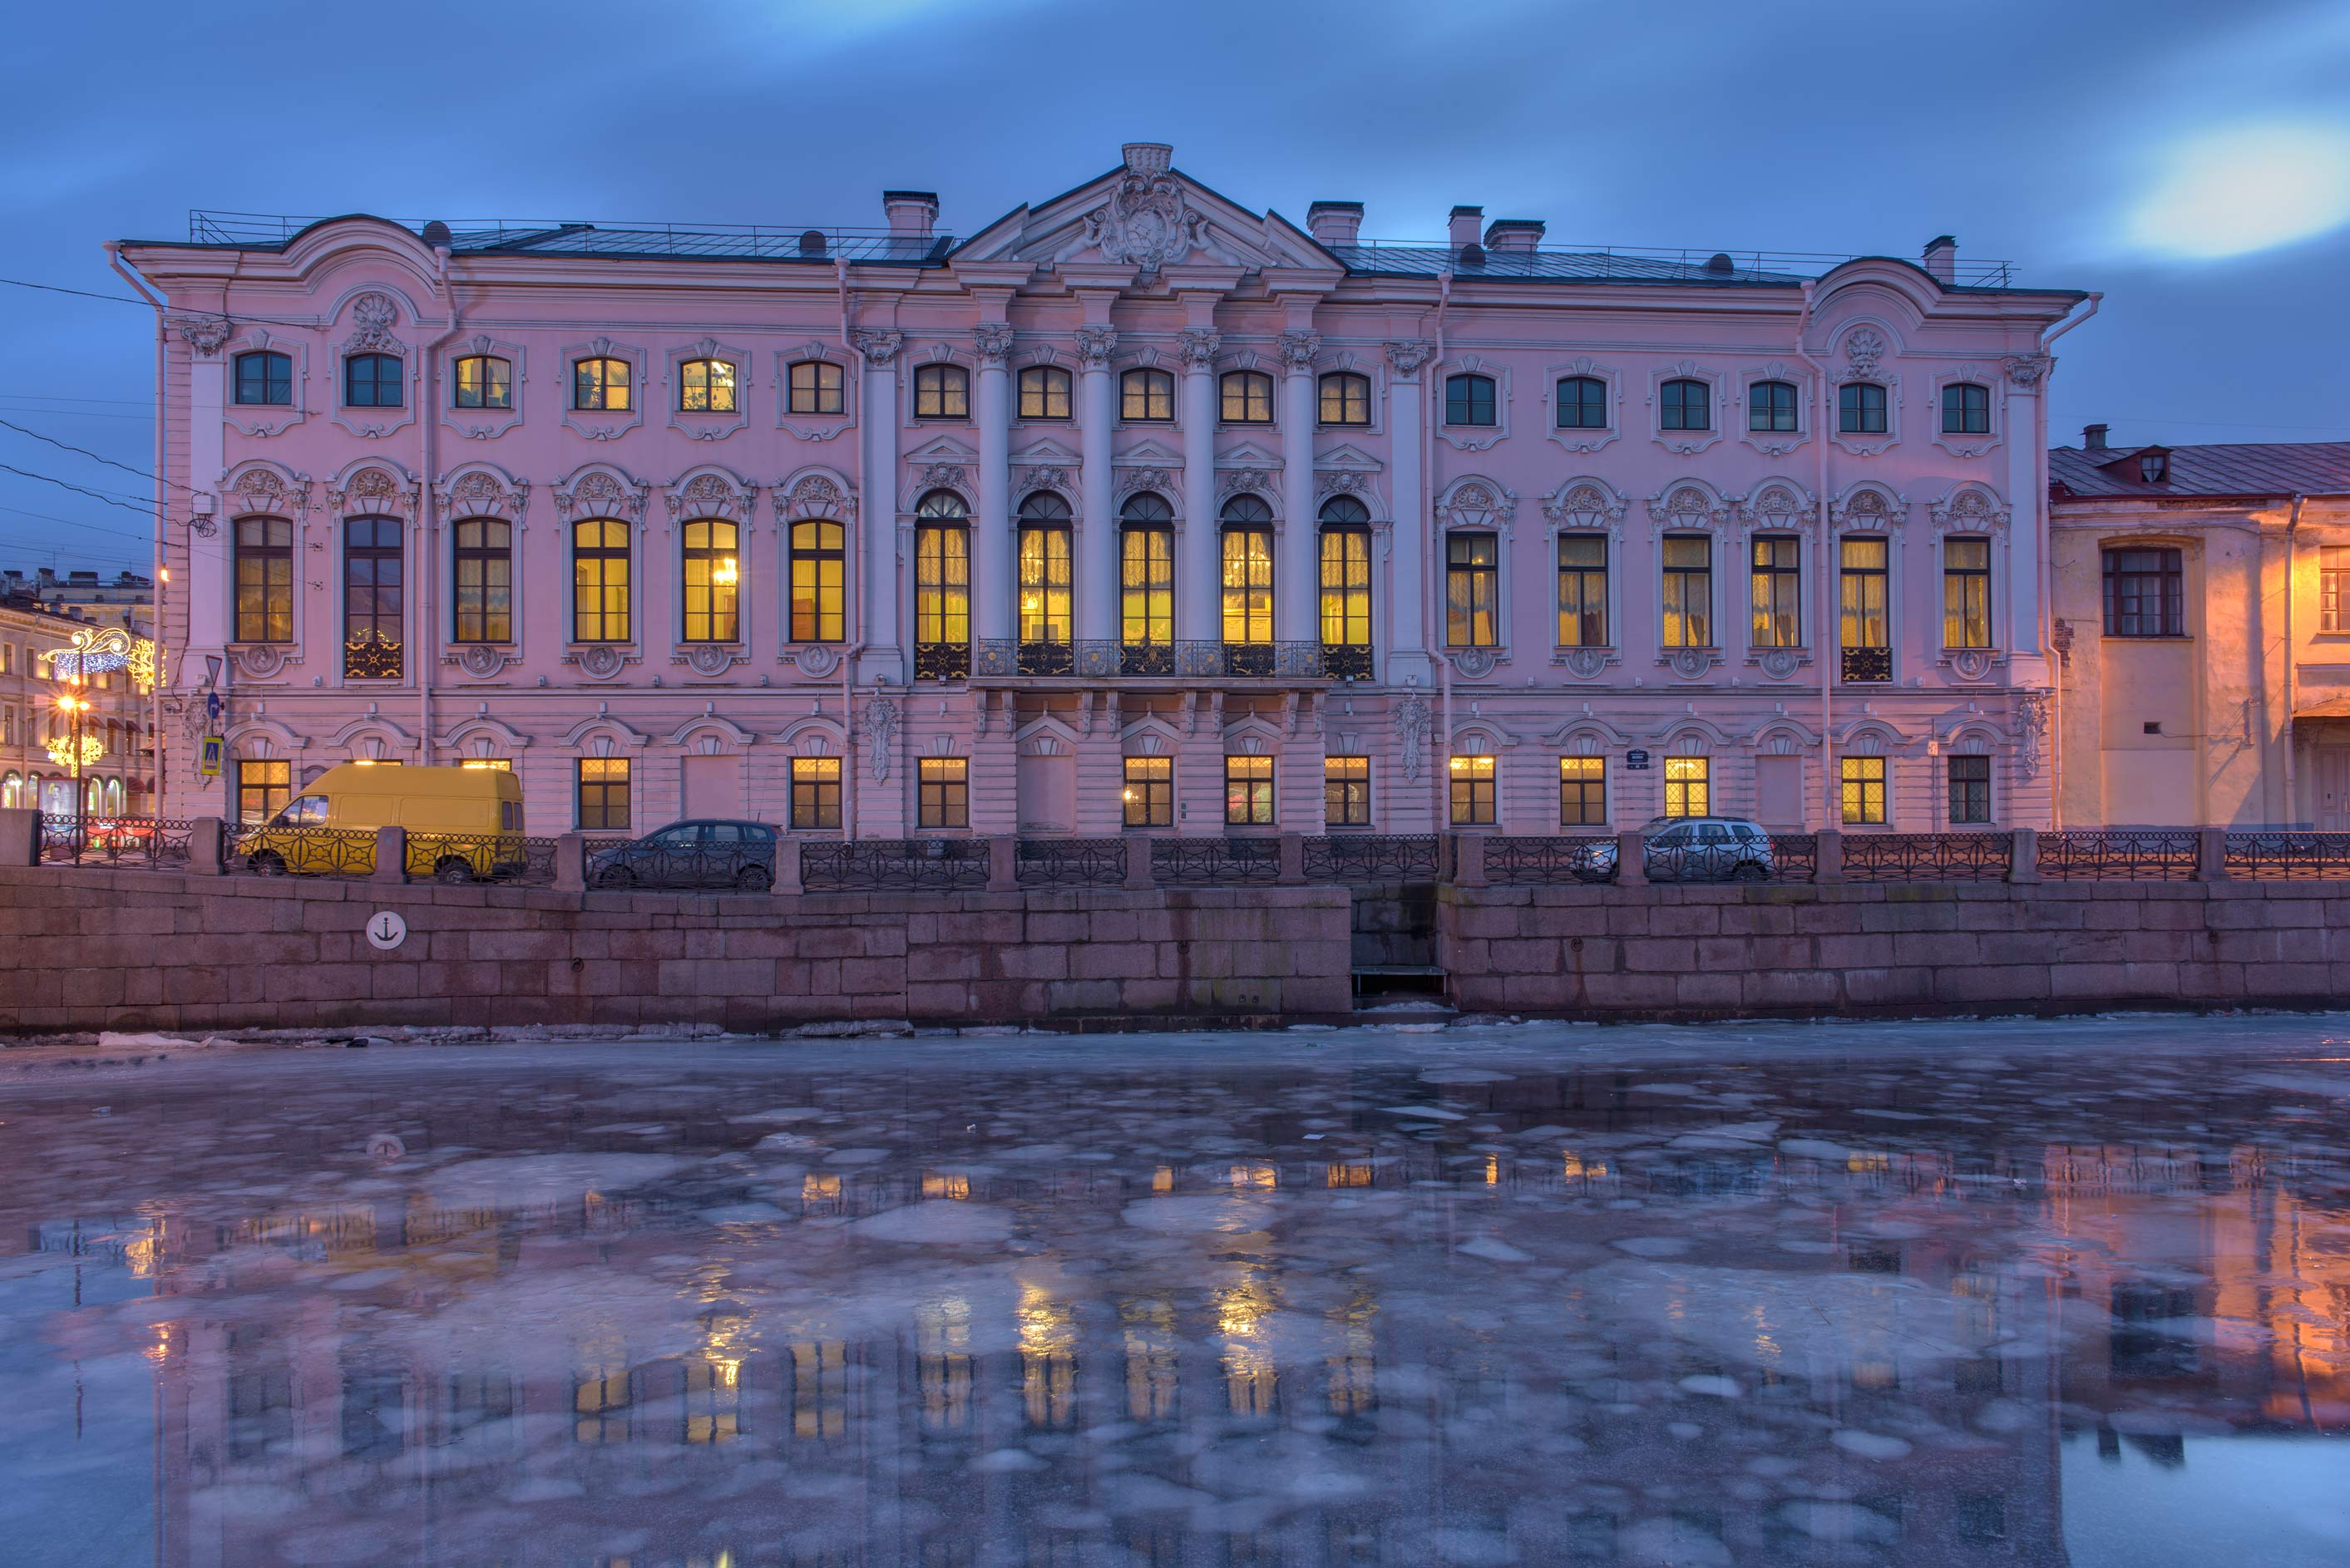 Stroganov Palace and Moyka River. St.Petersburg, Russia